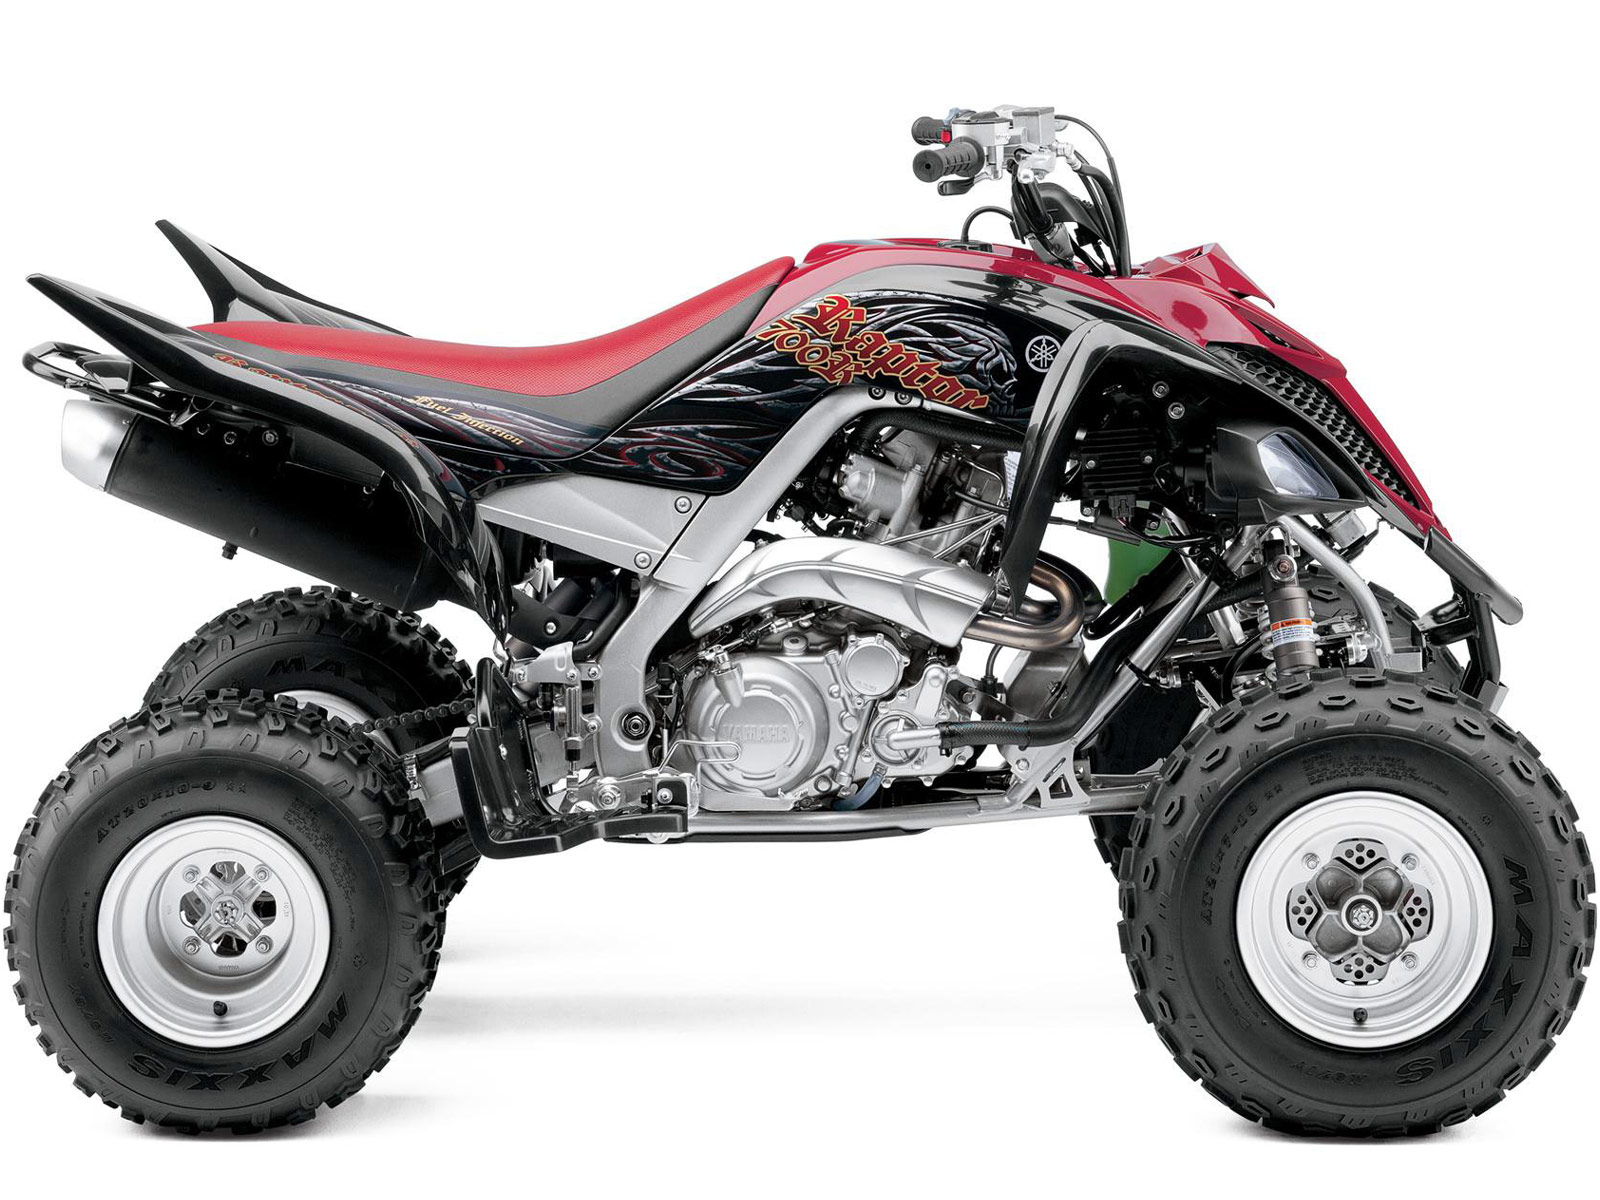 2013 yamaha raptor 700r price autos post